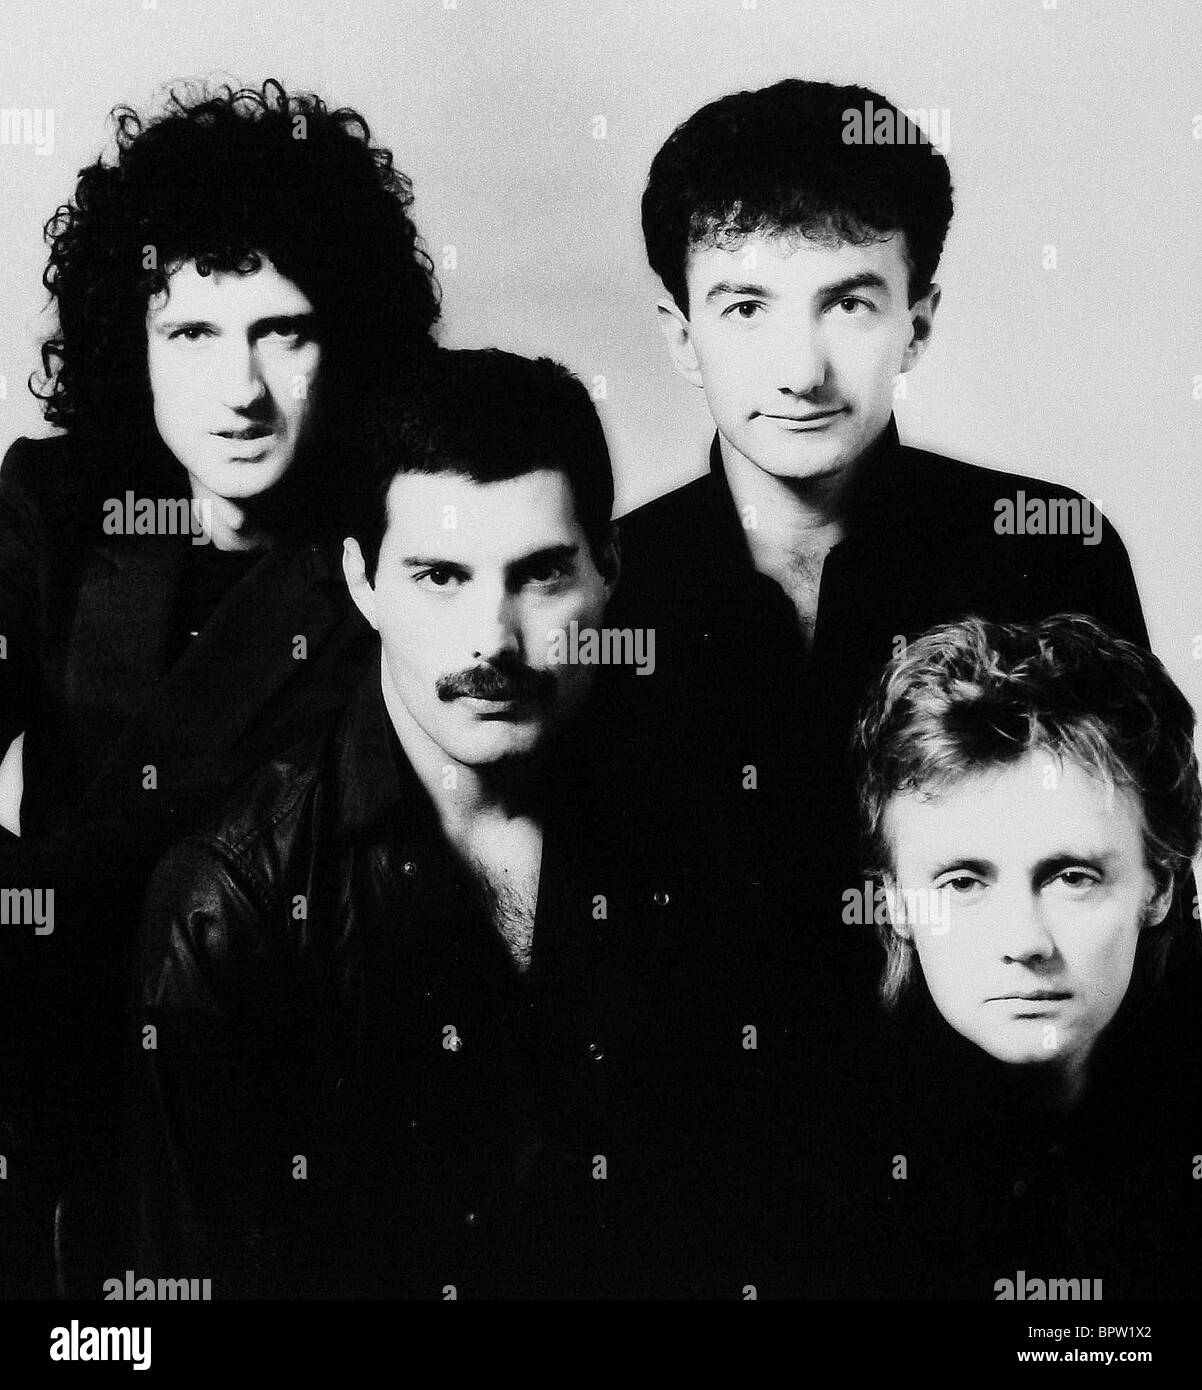 essay about queen rock band A musical analysis of british rock band queen's studio recordings  he has  published a number of articles and essays from his thesis and is.